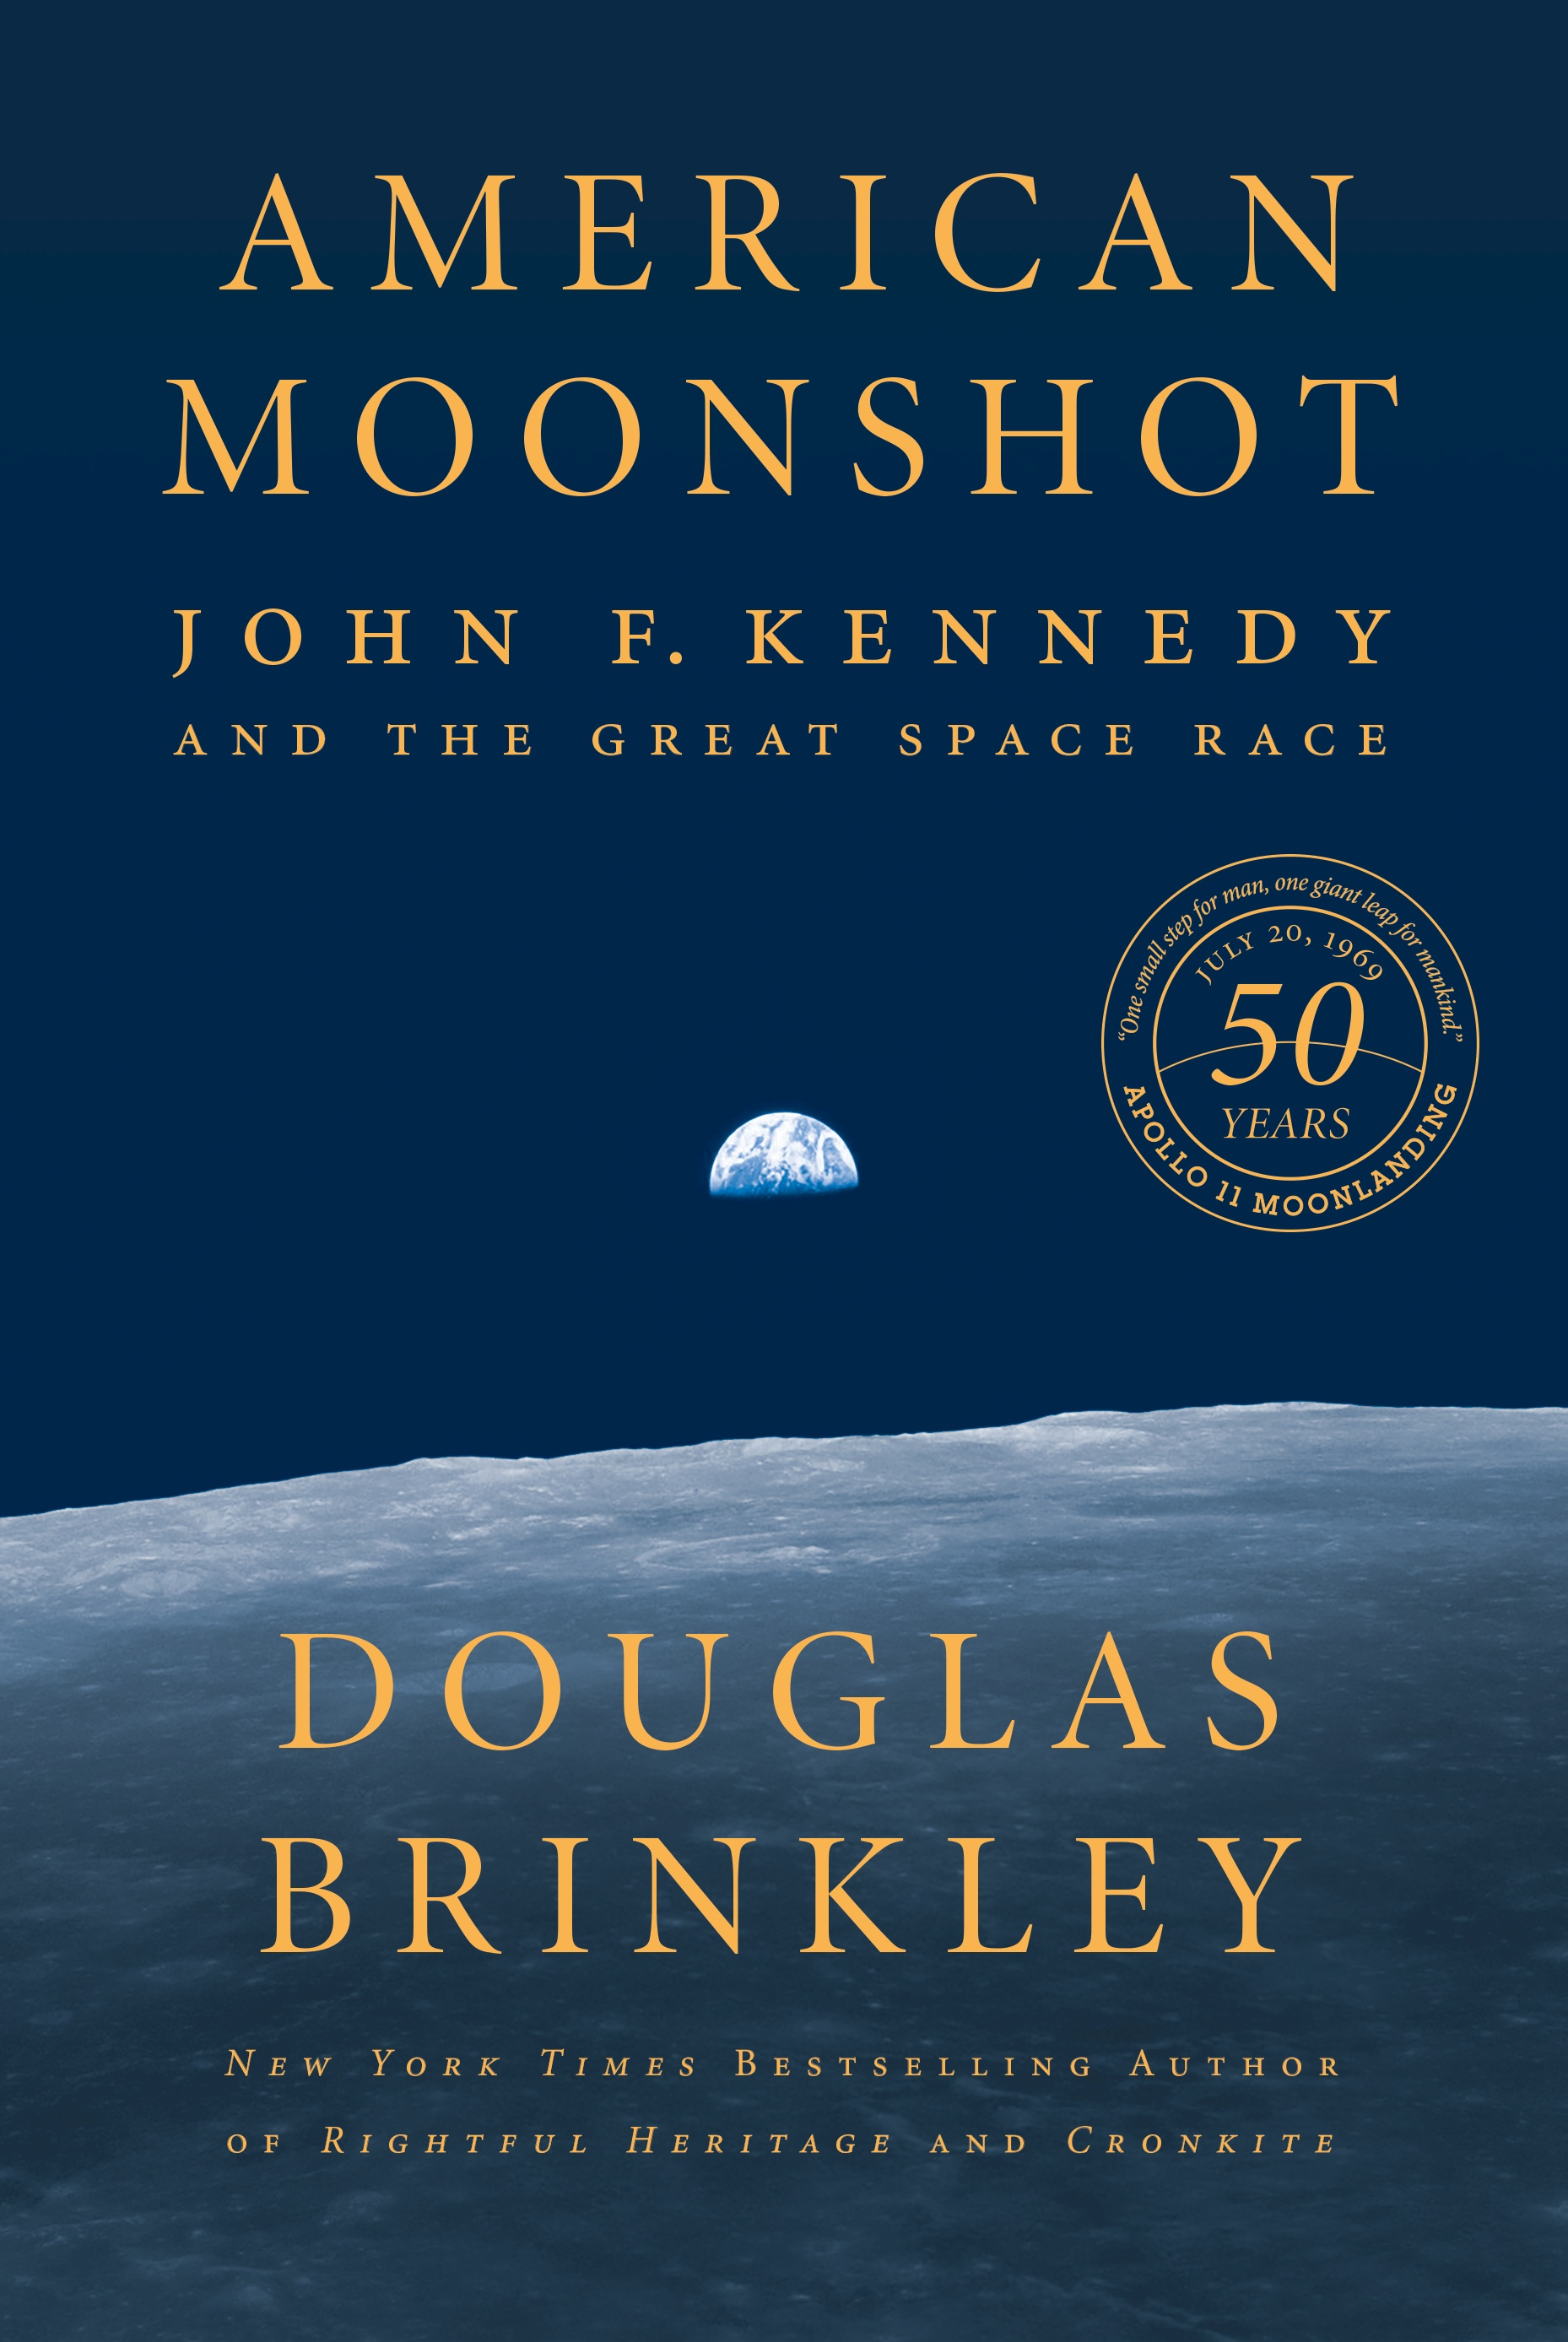 Douglas Brinkley: American Moonshot - John F. Kennedy and the Great Space Race